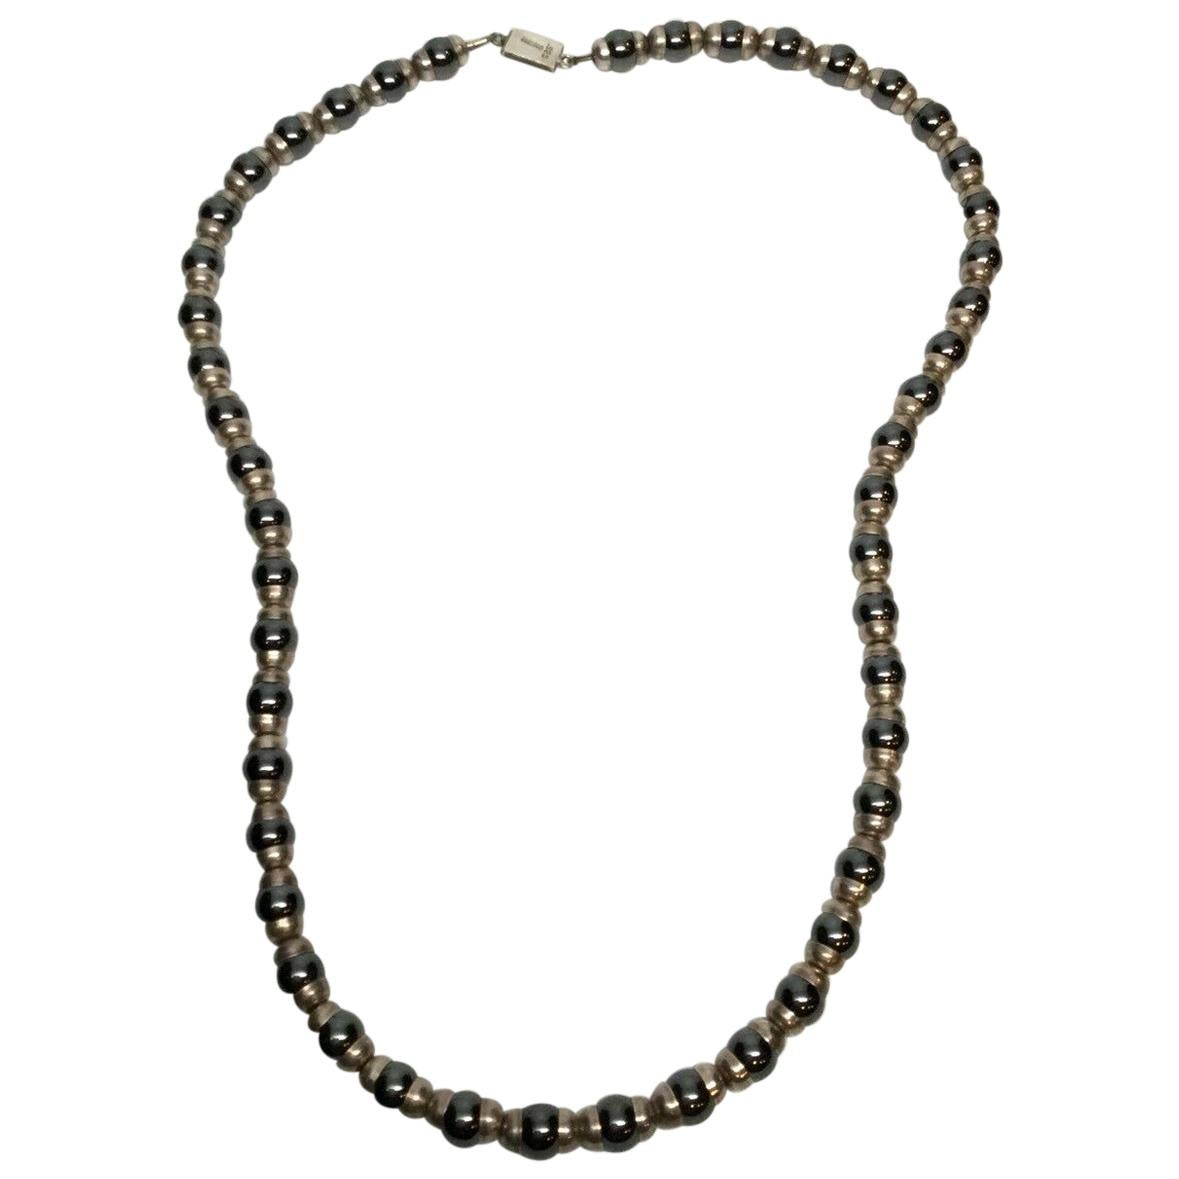 Taxco Mexico Sterling Silver and Hematite Bead Necklace TH-64